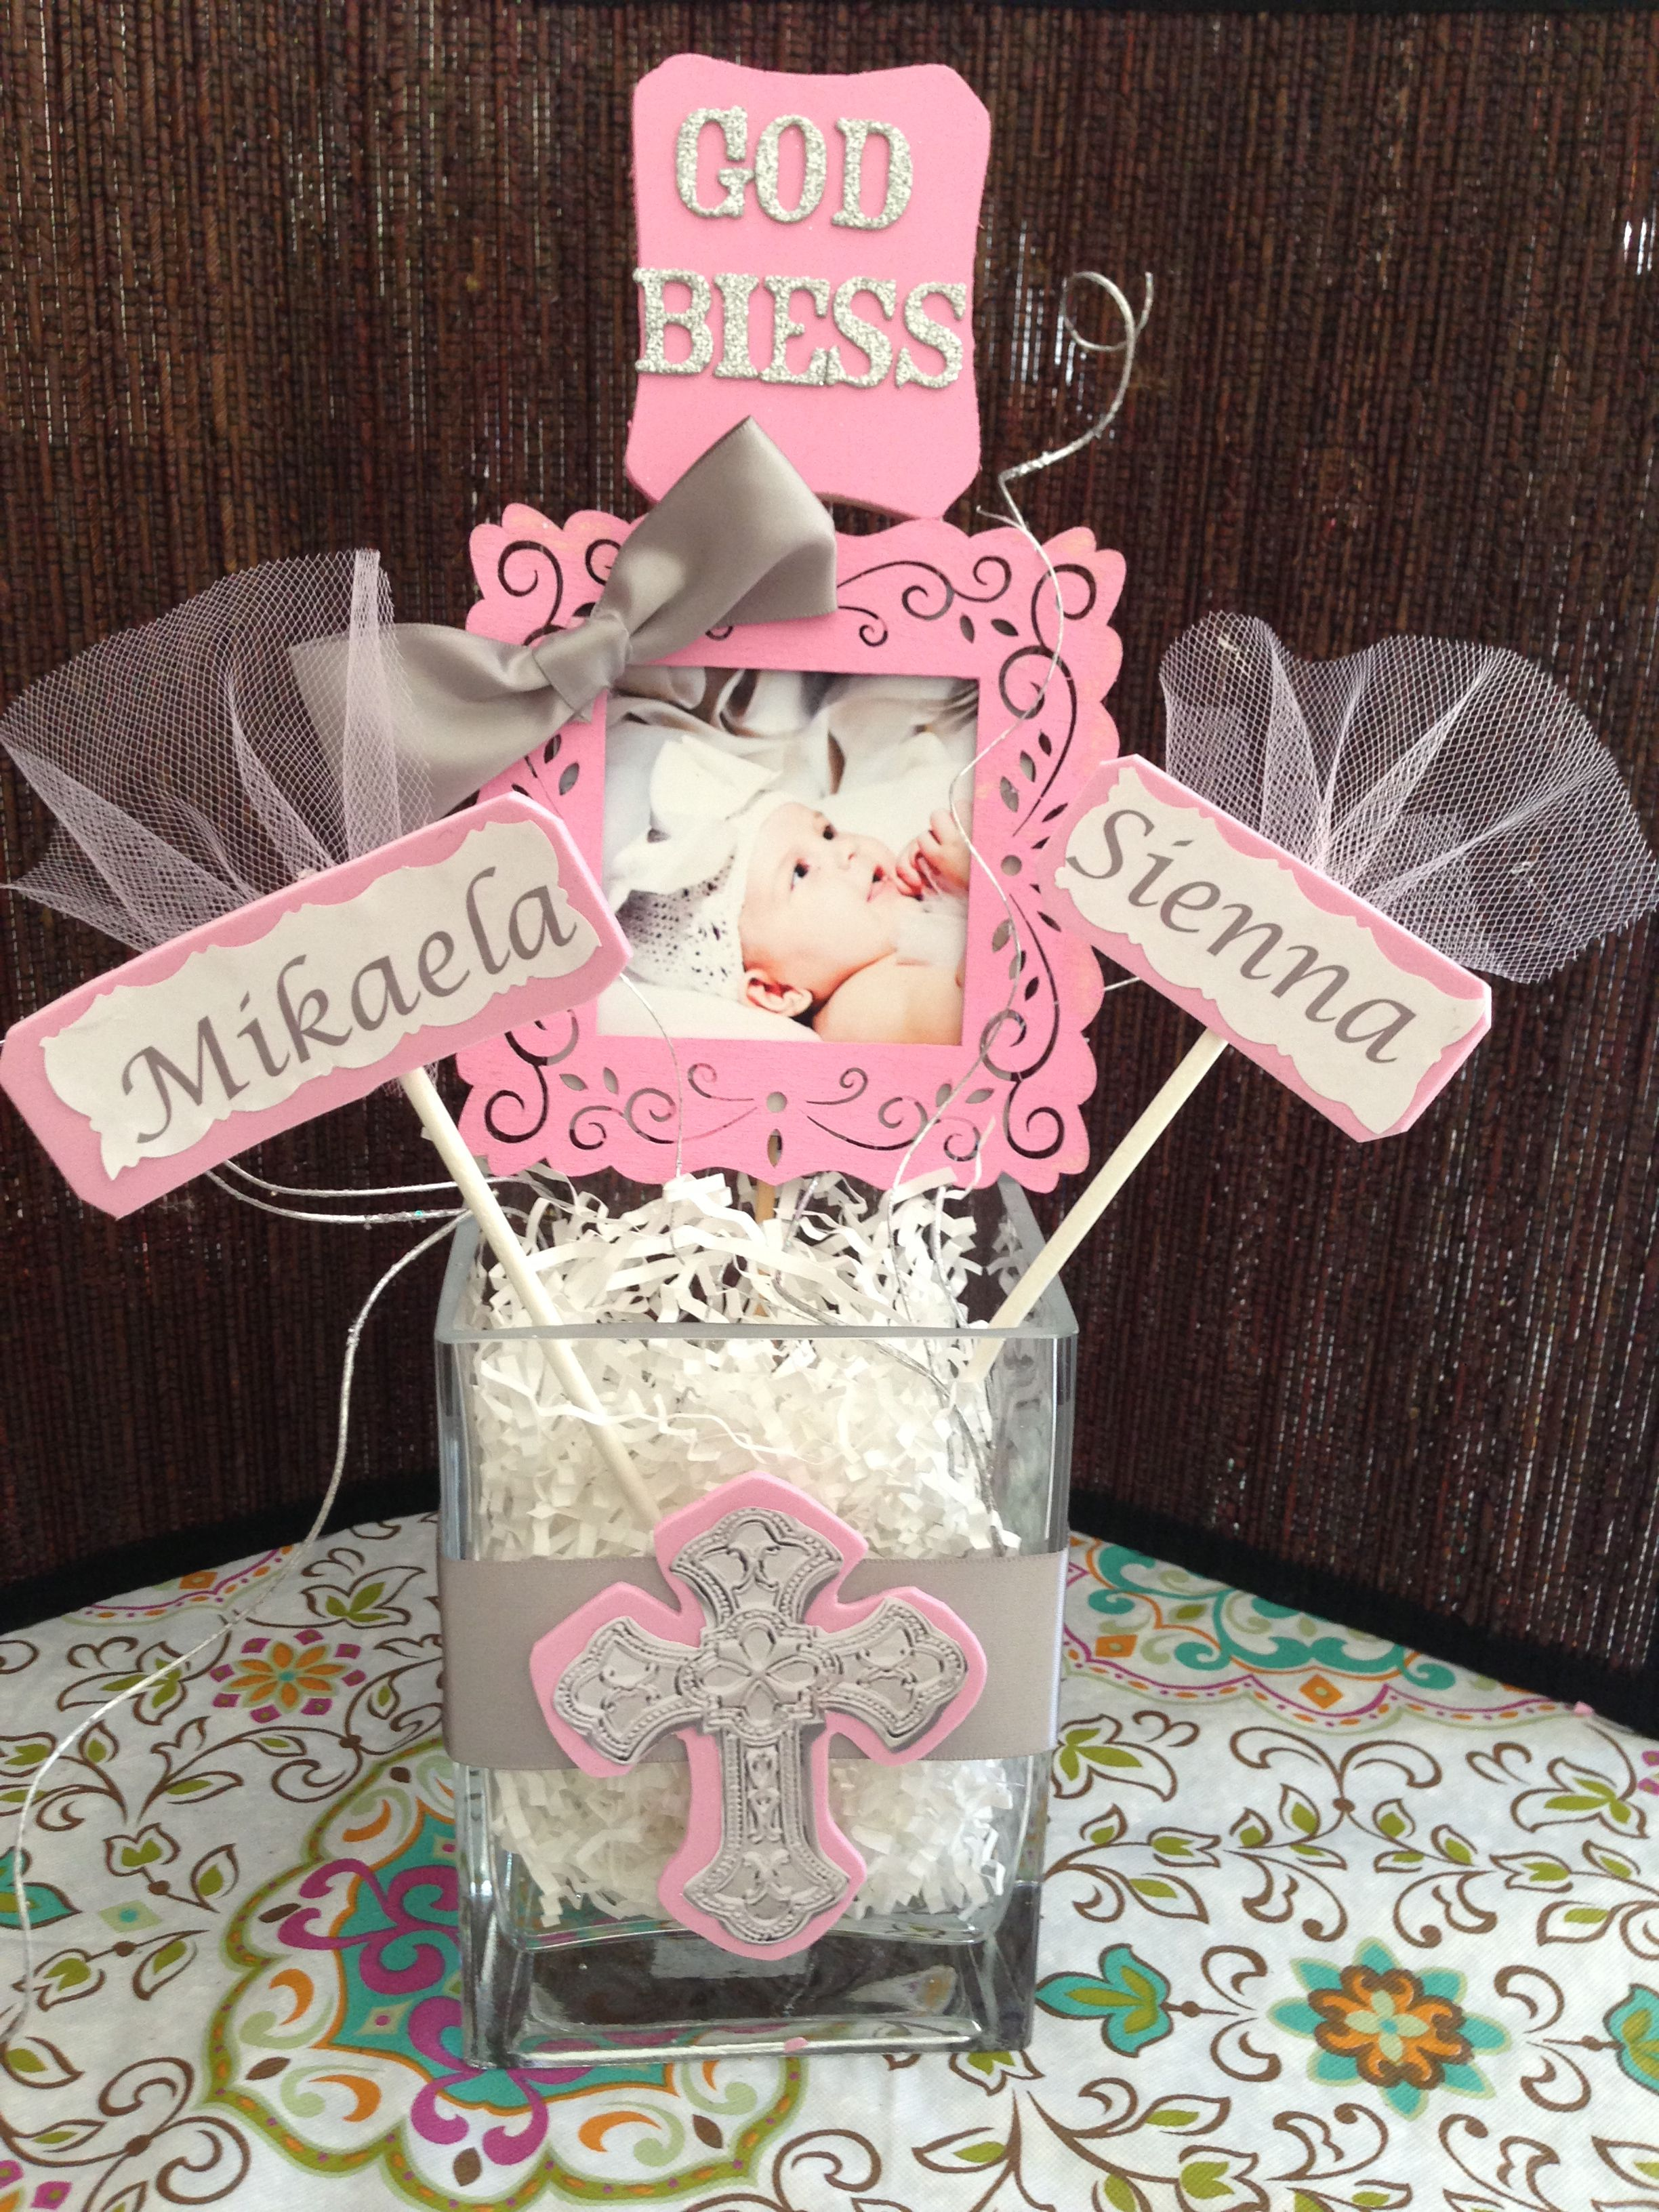 Diy so easy and very inexpensive baptism centerpiece pinterest easy baptism ideas and - Simple baptism centerpieces ...